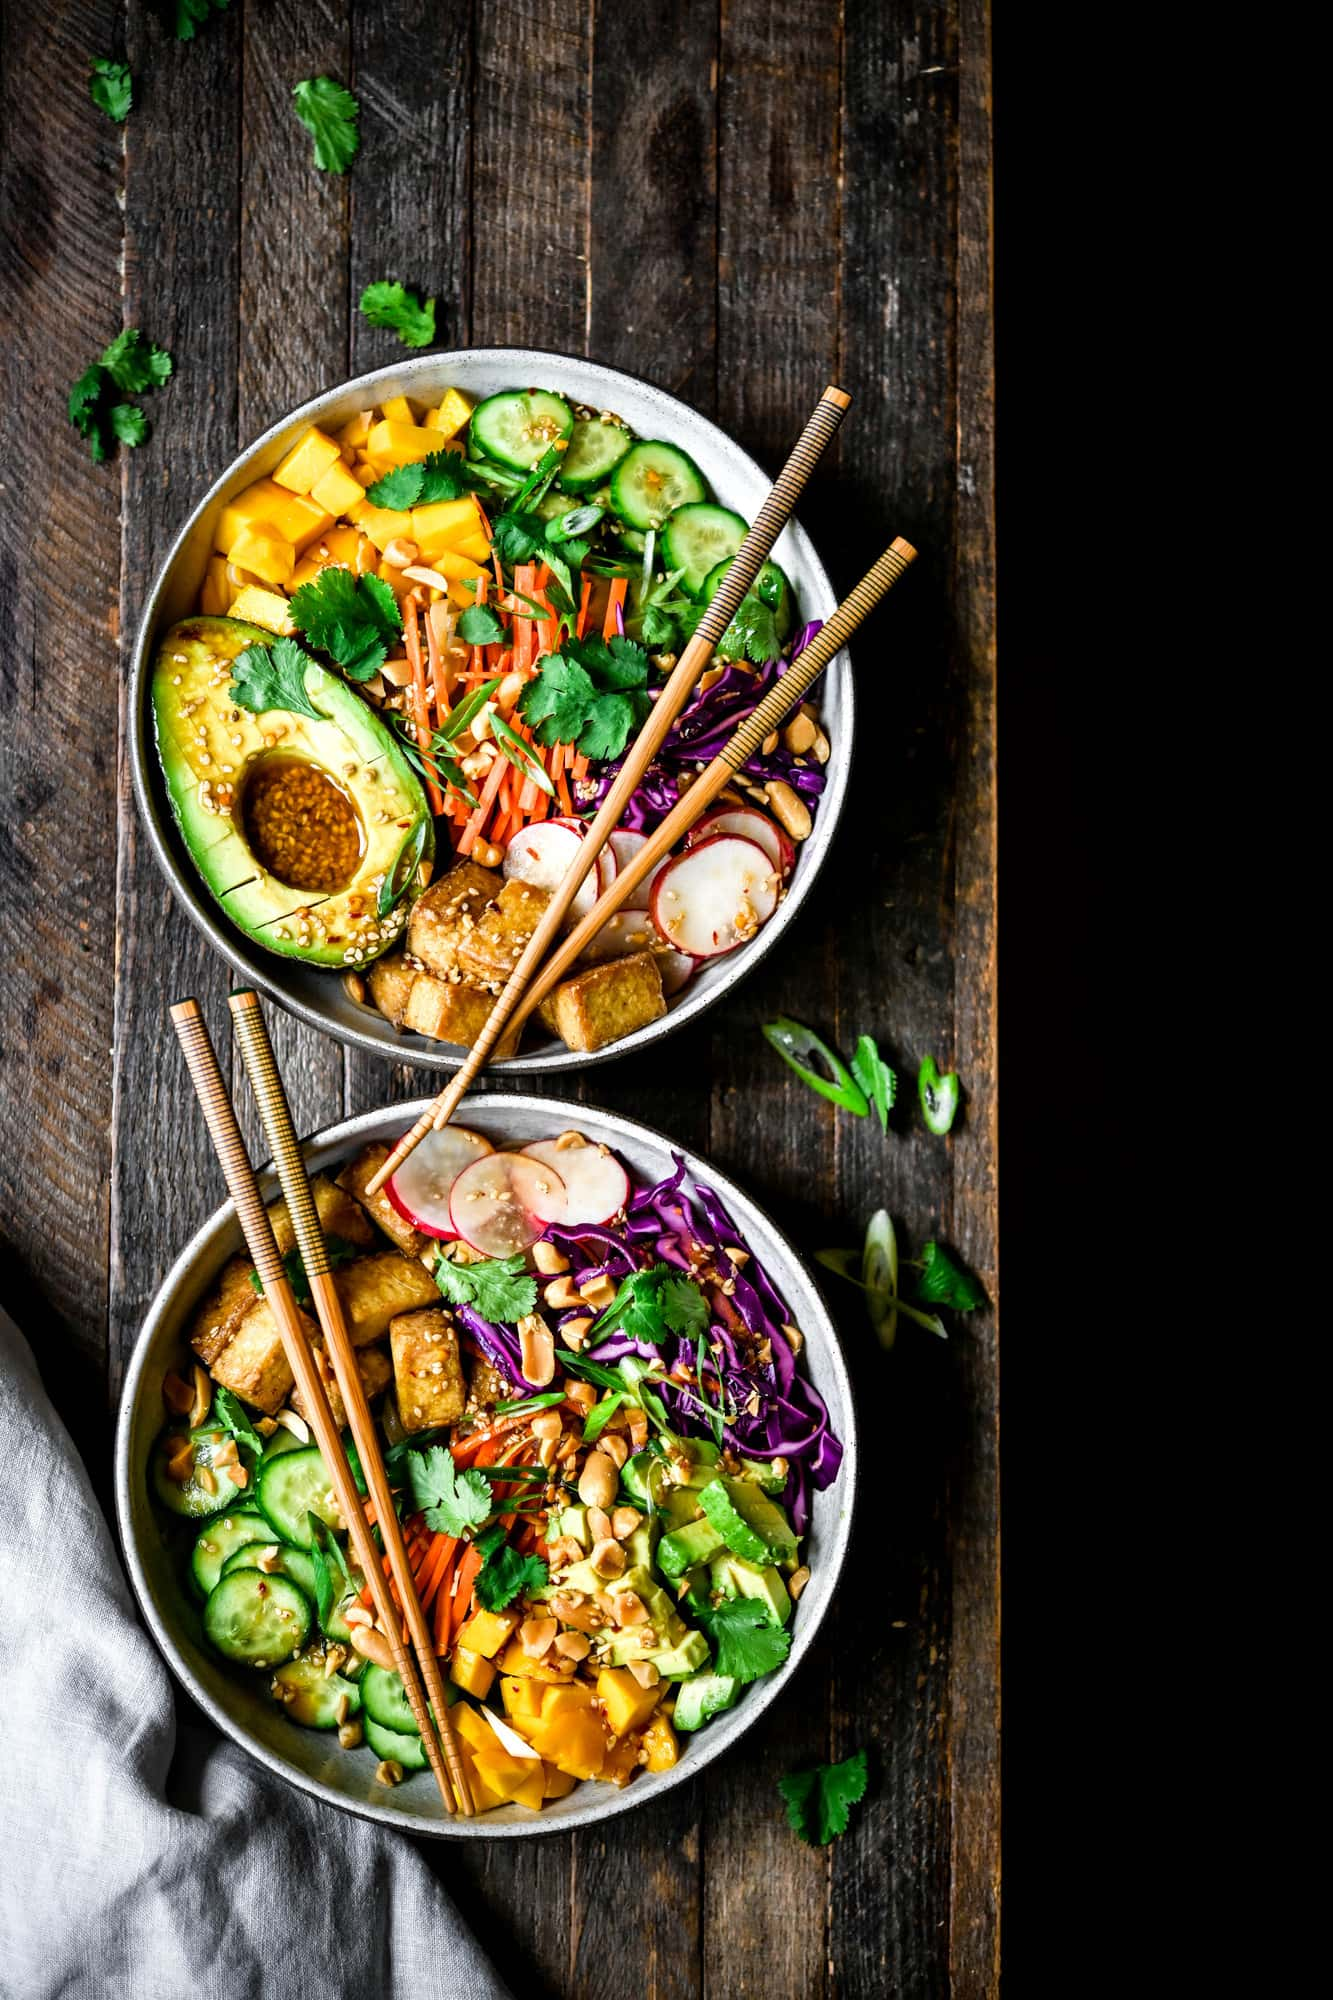 Overhead view of two bowls of vegan spring roll bowl with crispy tofu and avocado on wood background